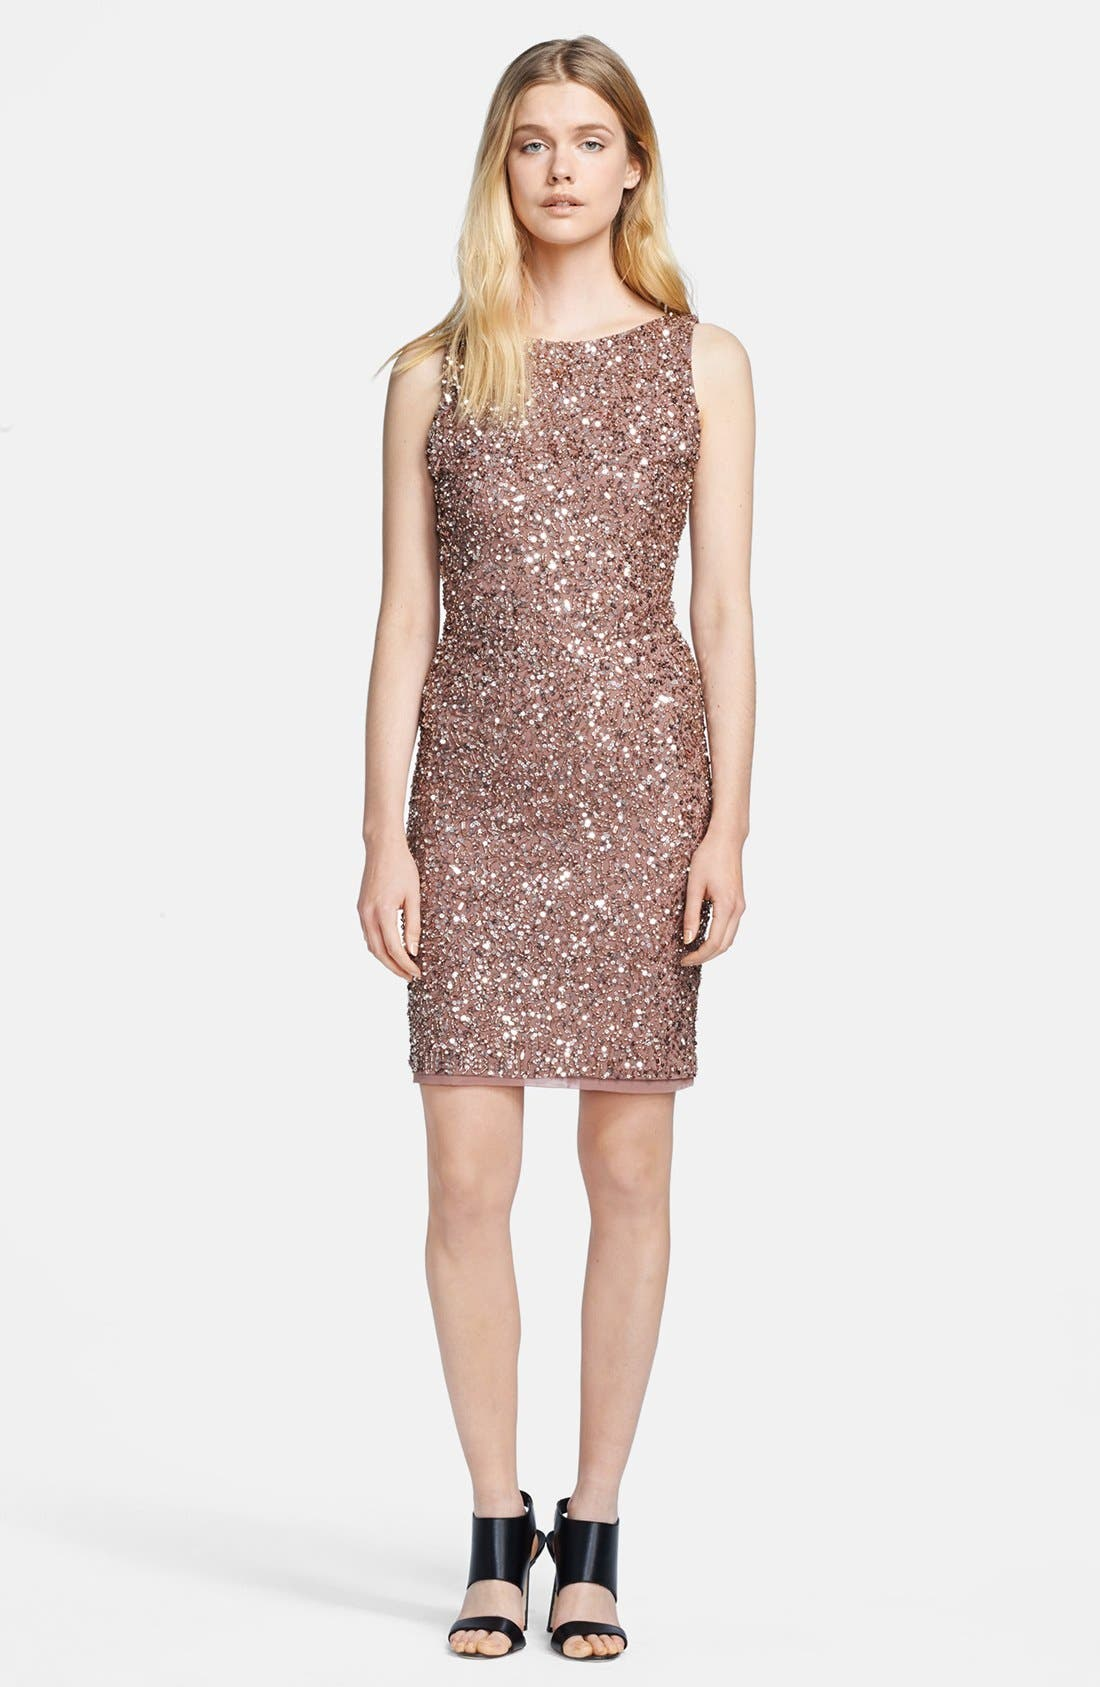 Main Image - Alice + Olivia 'Kimber' Sleeveless Bead Embellished Dress